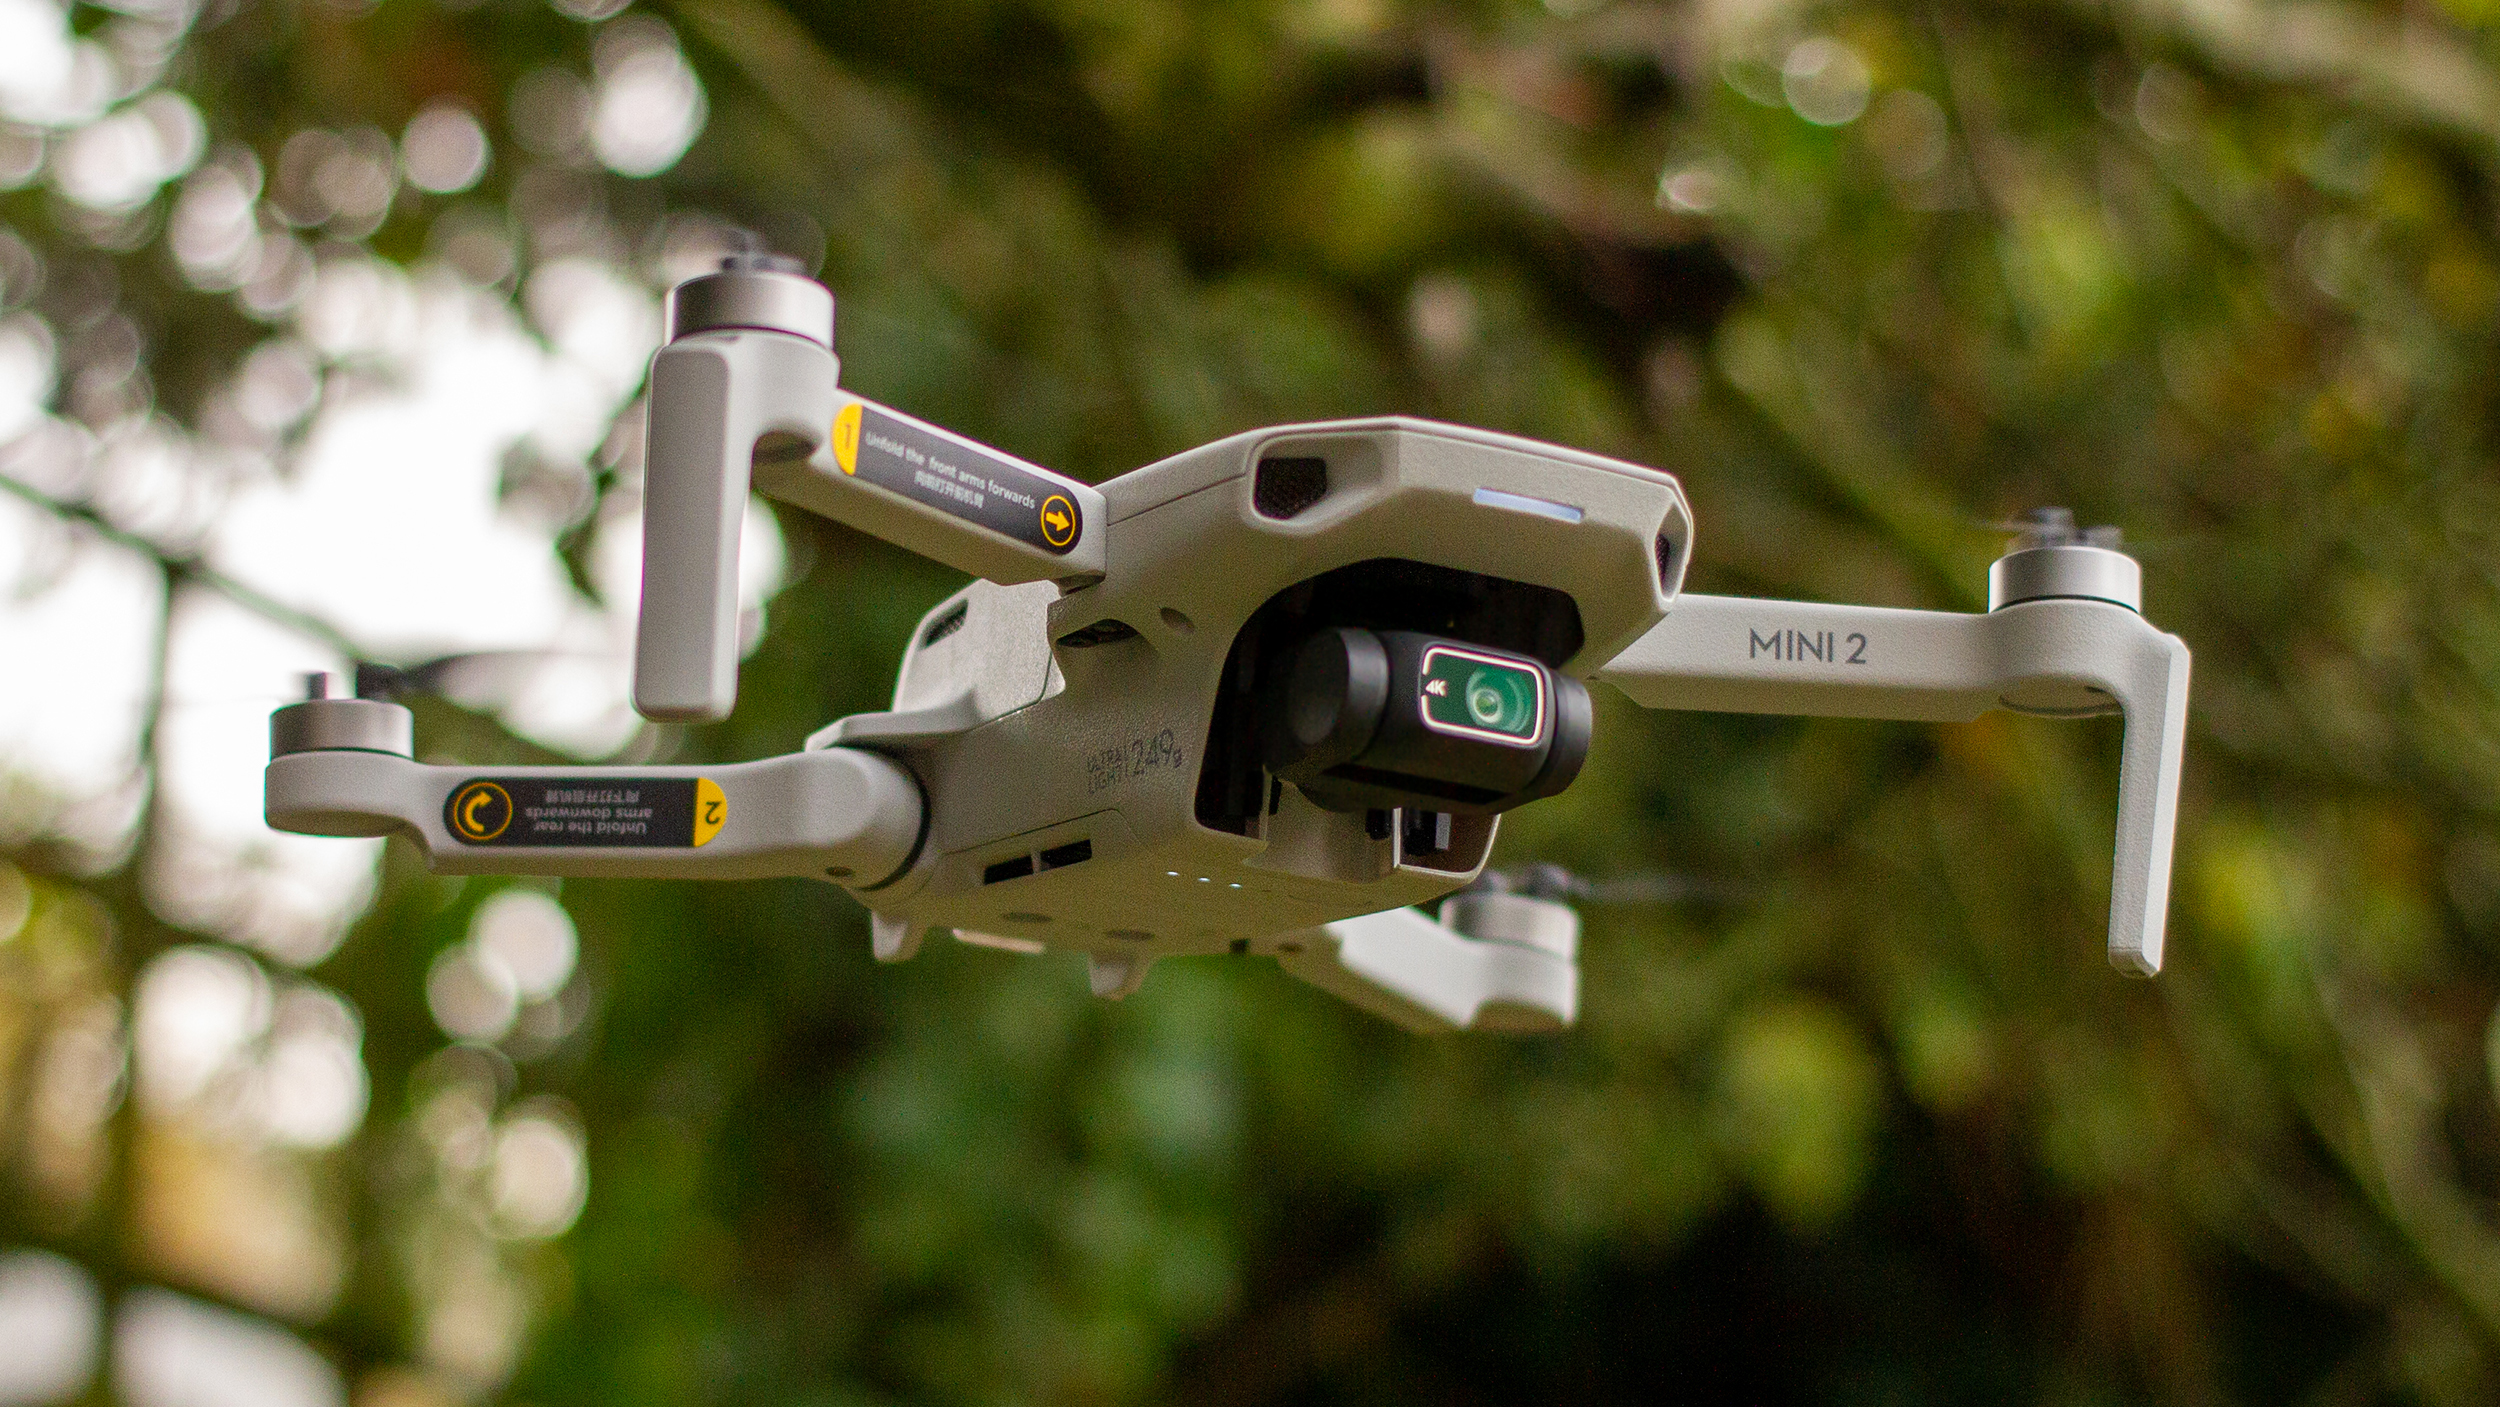 Https Www Techradar Com Reviews Dji Mini 2